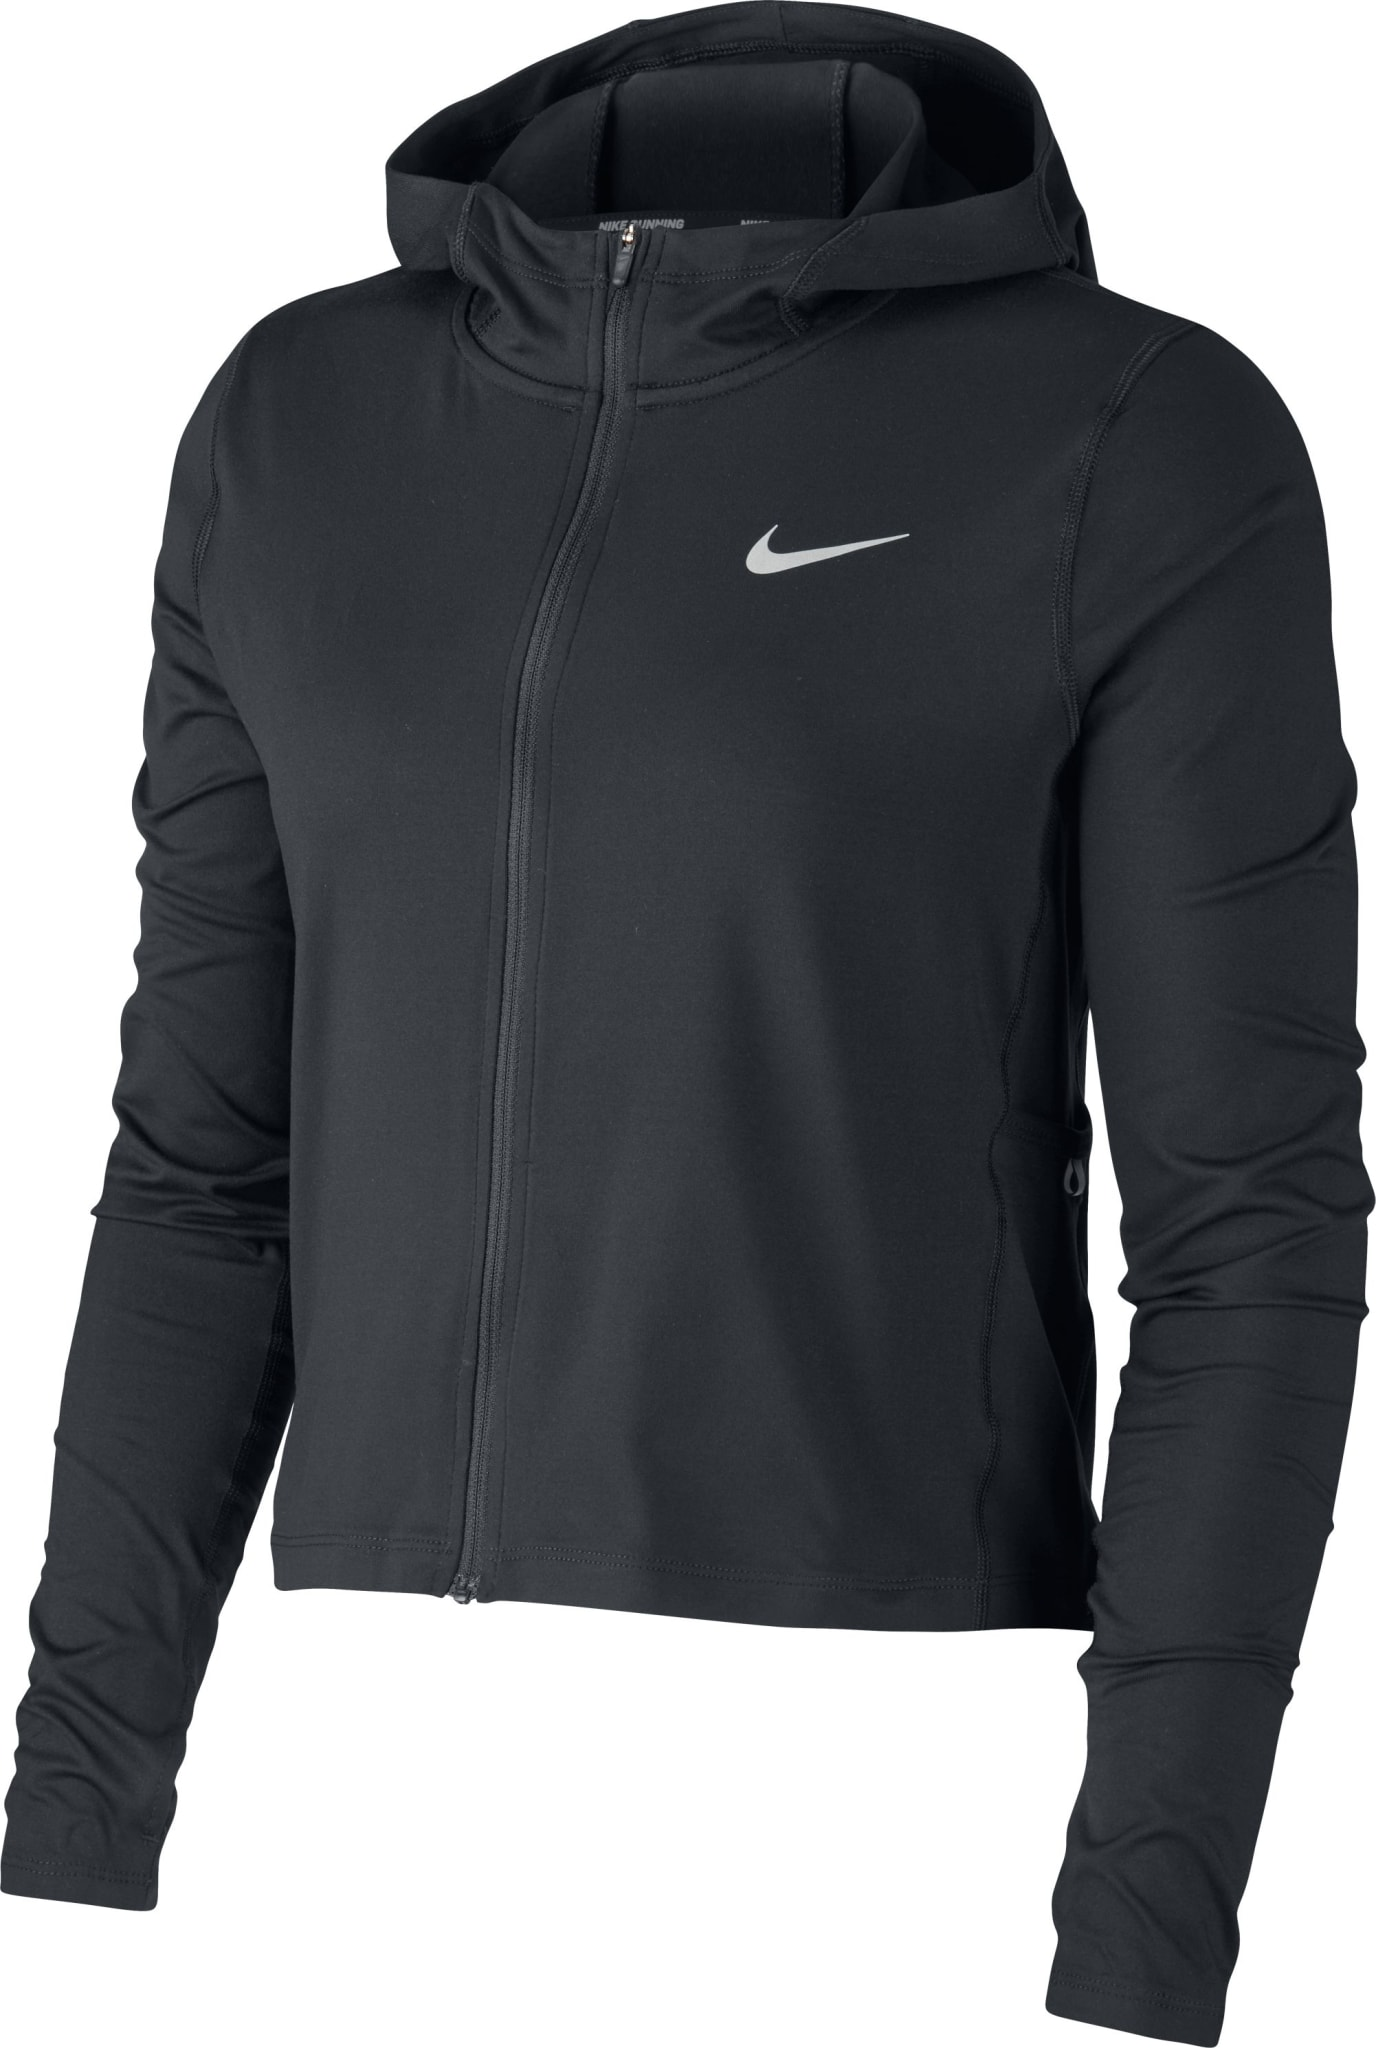 Nike Element Women's Full-Zip